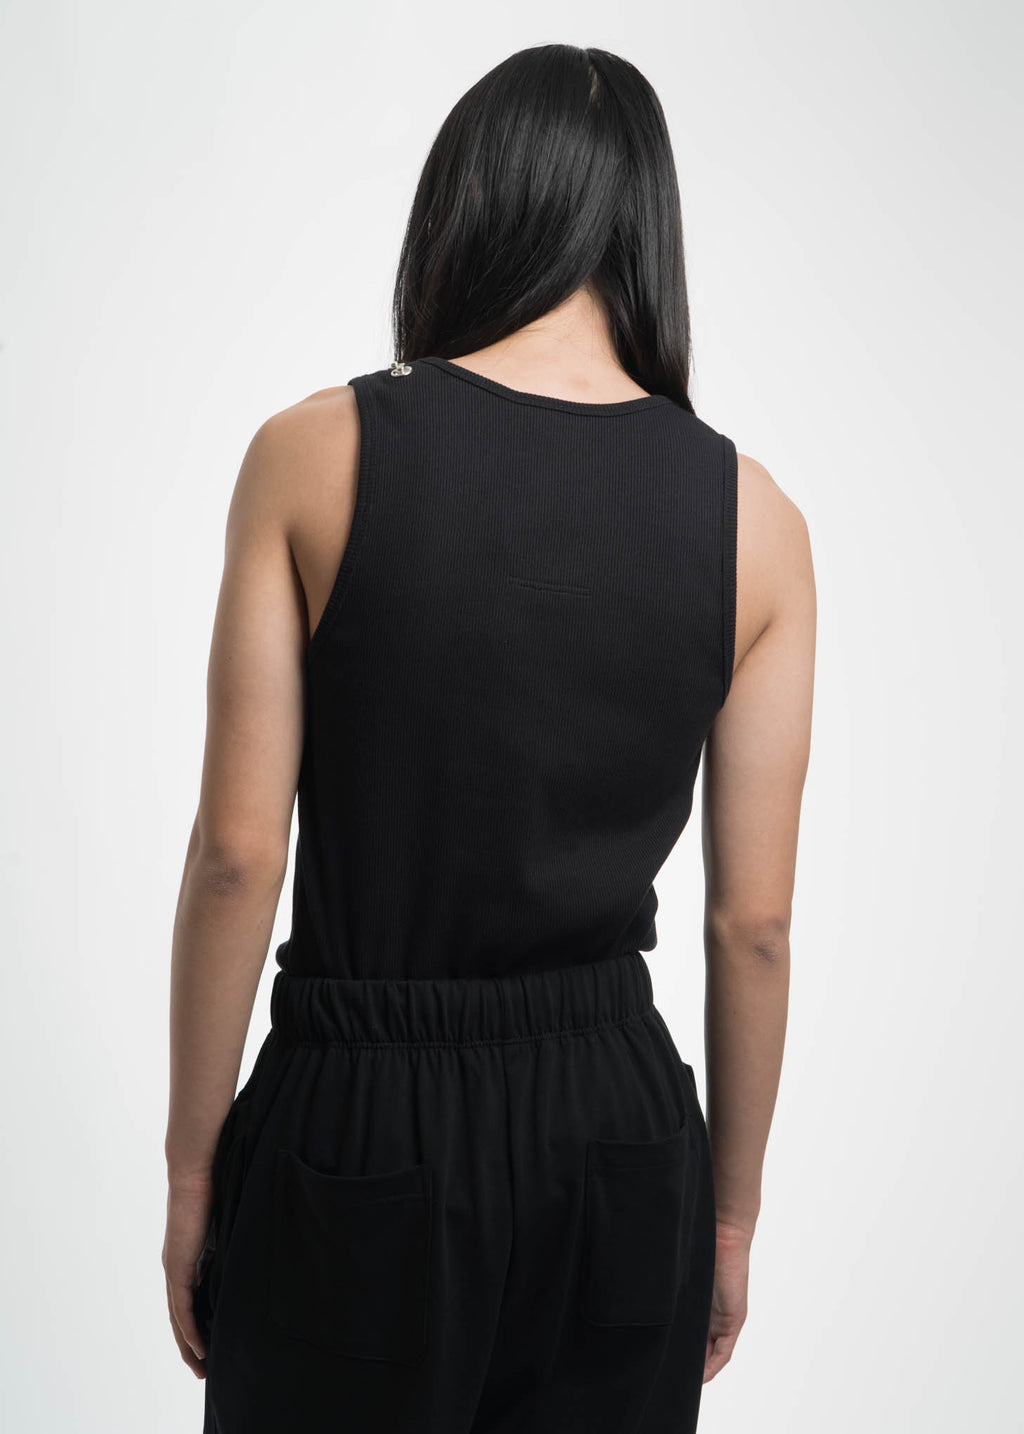 0342d8b3dd4dc ... Black Reveal Tank Top ...